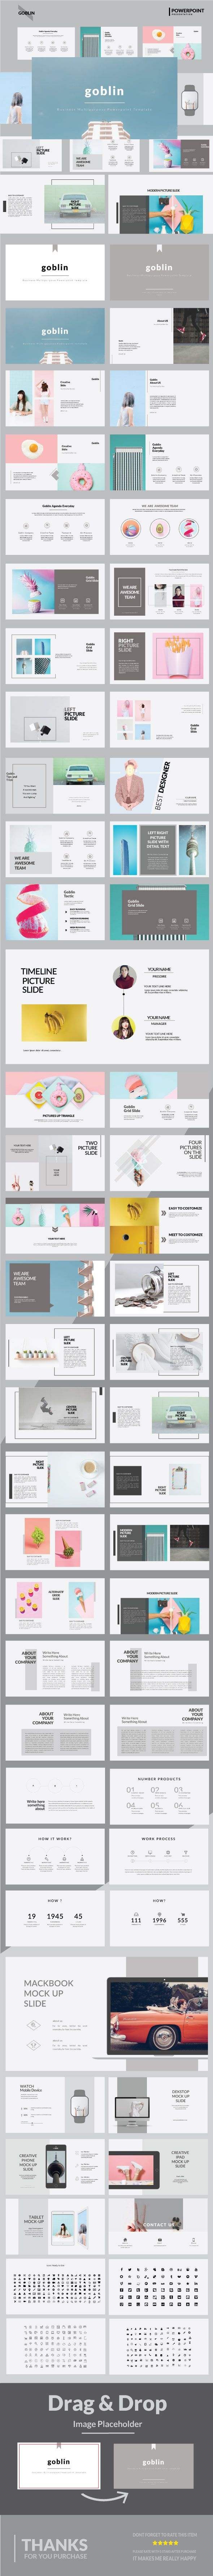 Goblin multipurpose powerpoint template business powerpoint buy goblin multipurpose powerpoint template by luckysign on graphicriver overview goblin the second pastel style has a professional ultra modern and toneelgroepblik Image collections